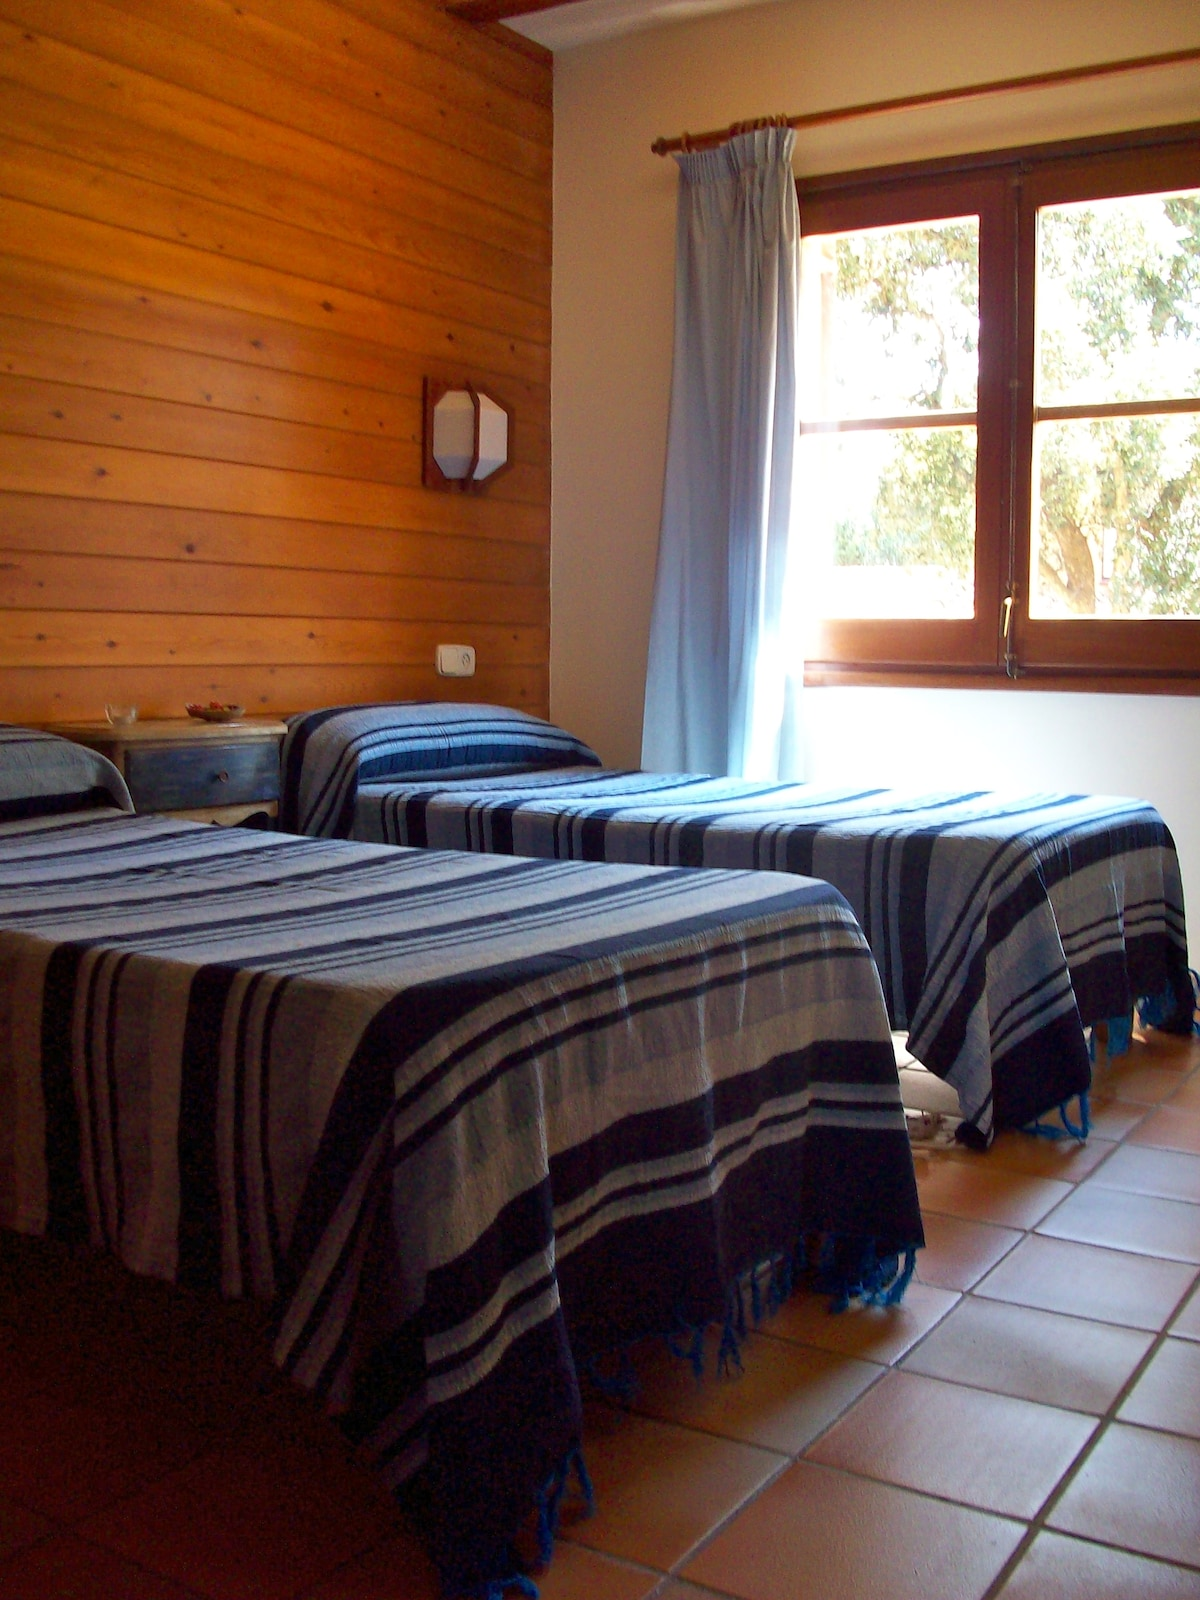 Bed + Breakfast = Costa Brava Relax